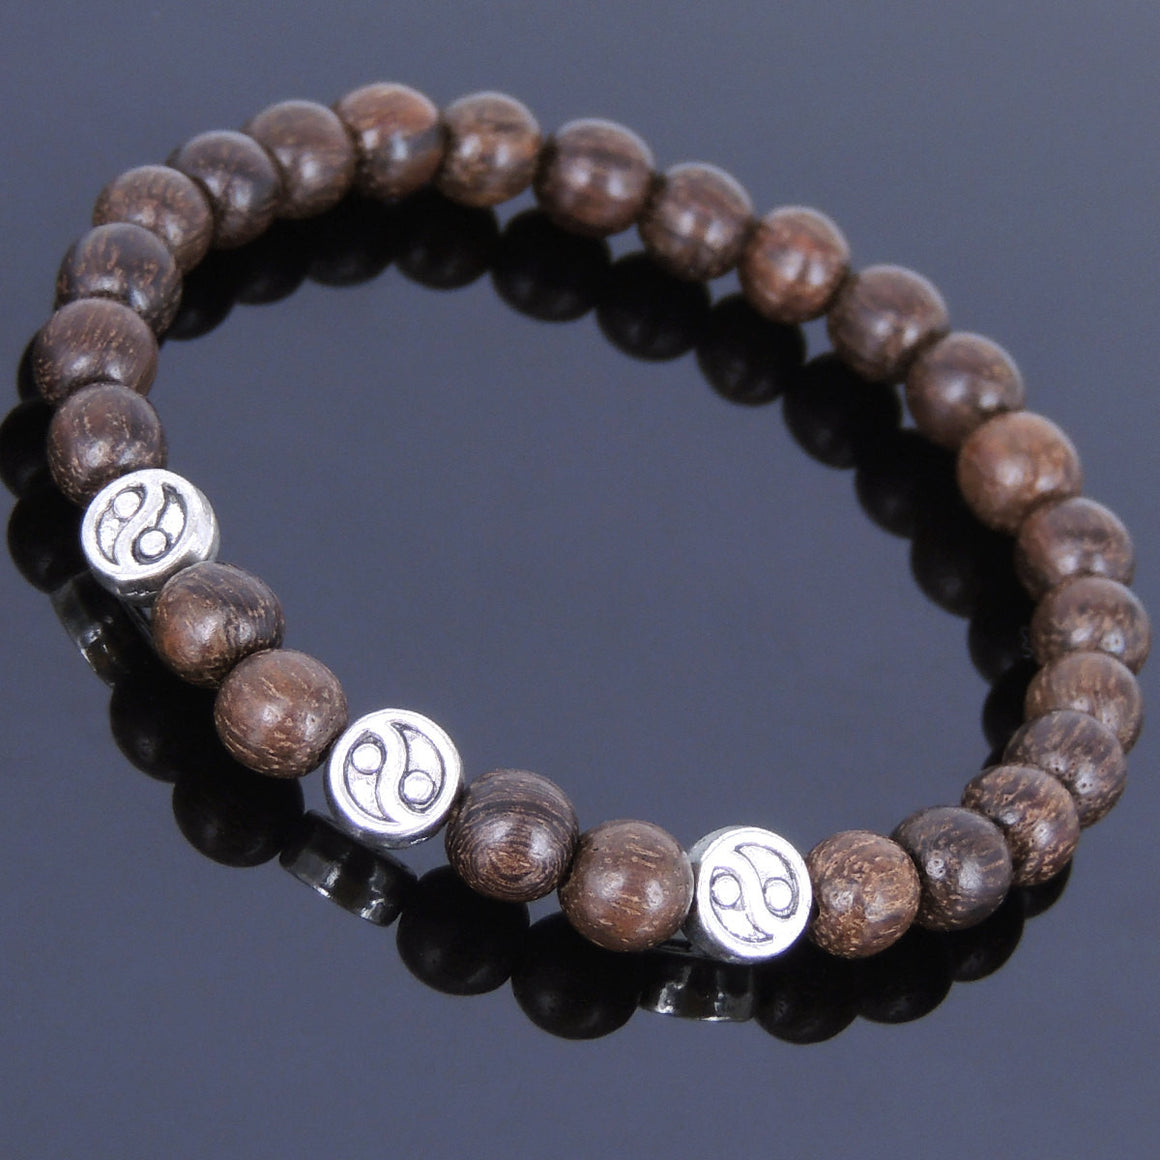 6.5mm Red Vietnam Agarwood Bracelet for Prayer & Meditation with Tibetan Silver Ying Yang Taiji Balance Beads - Handmade by Gem & Silver AWB022